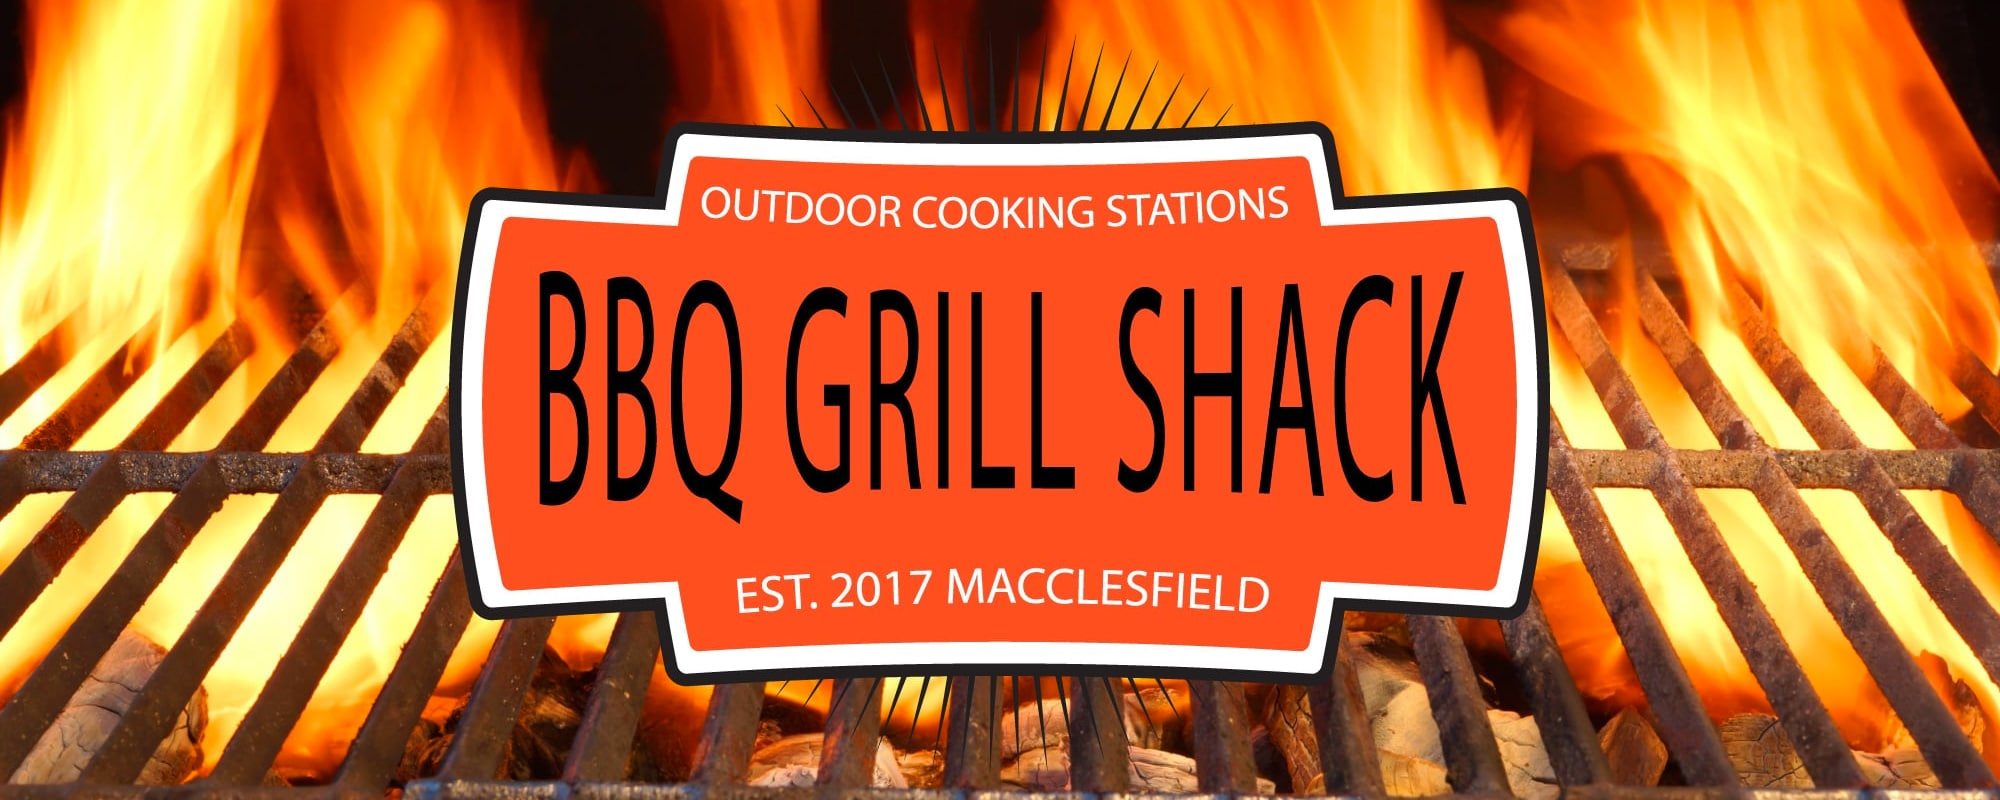 BBQ Grill Shack Outdoor Cooking Stations